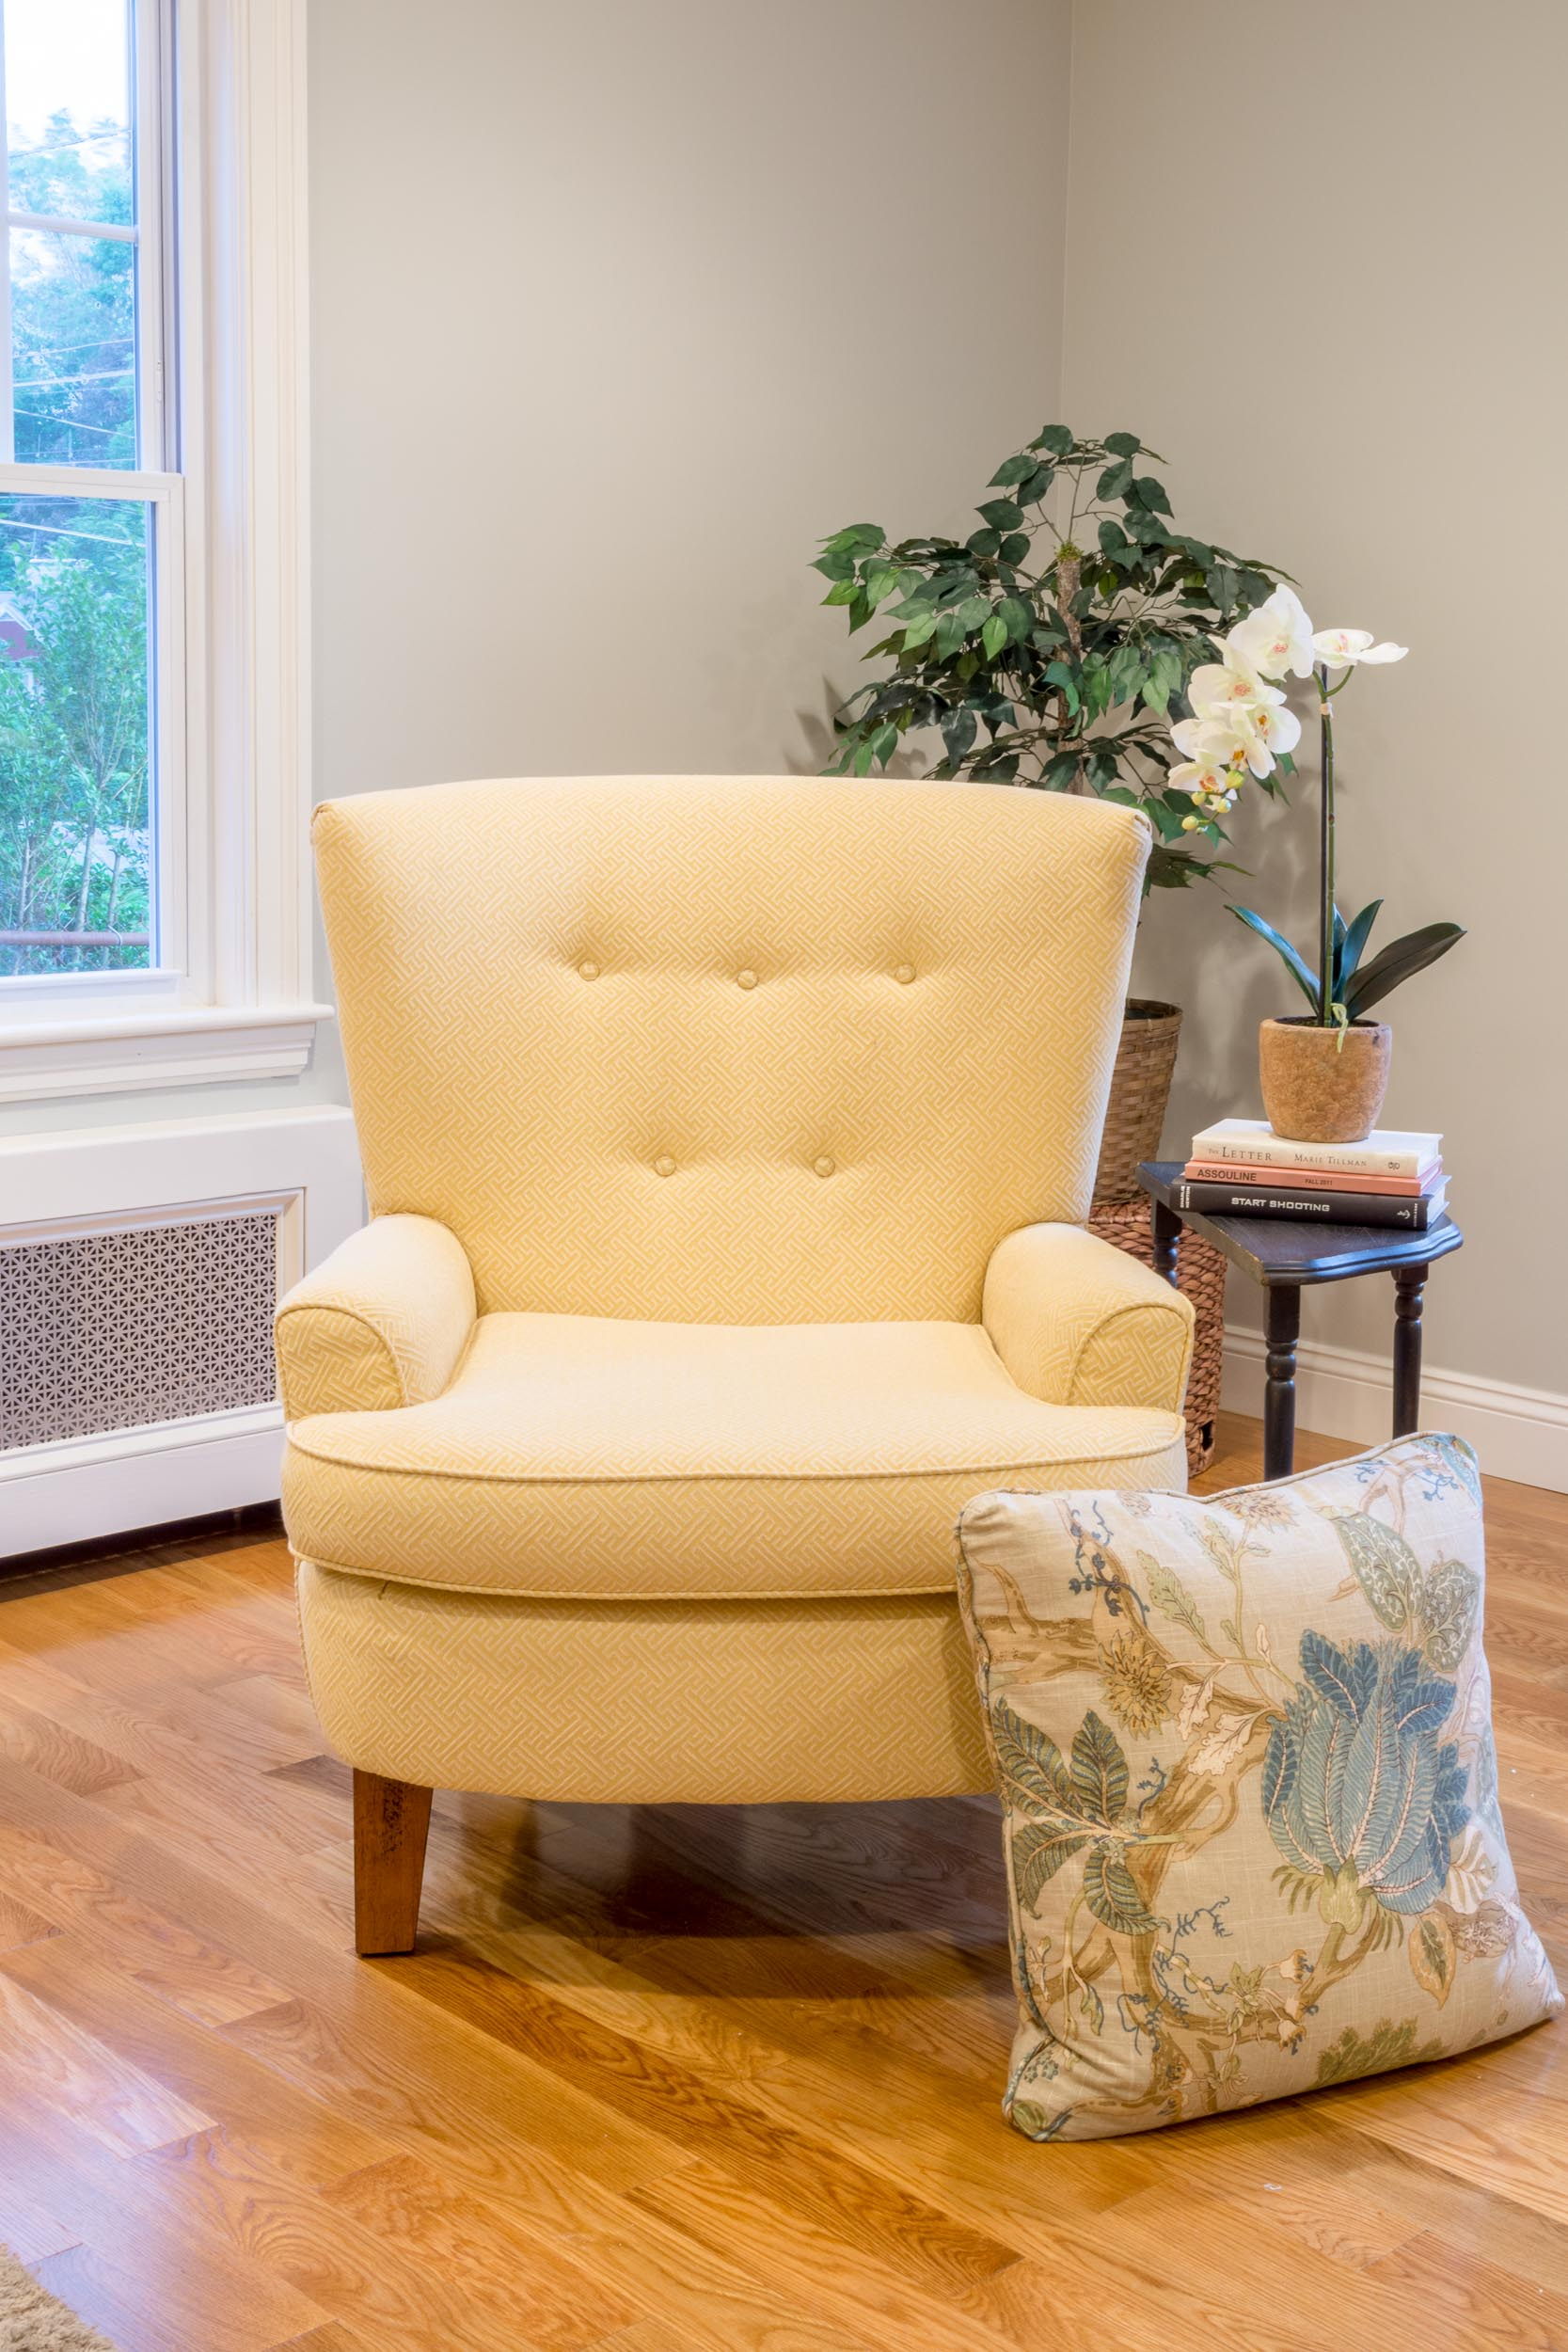 Home Styling In Medford, MA